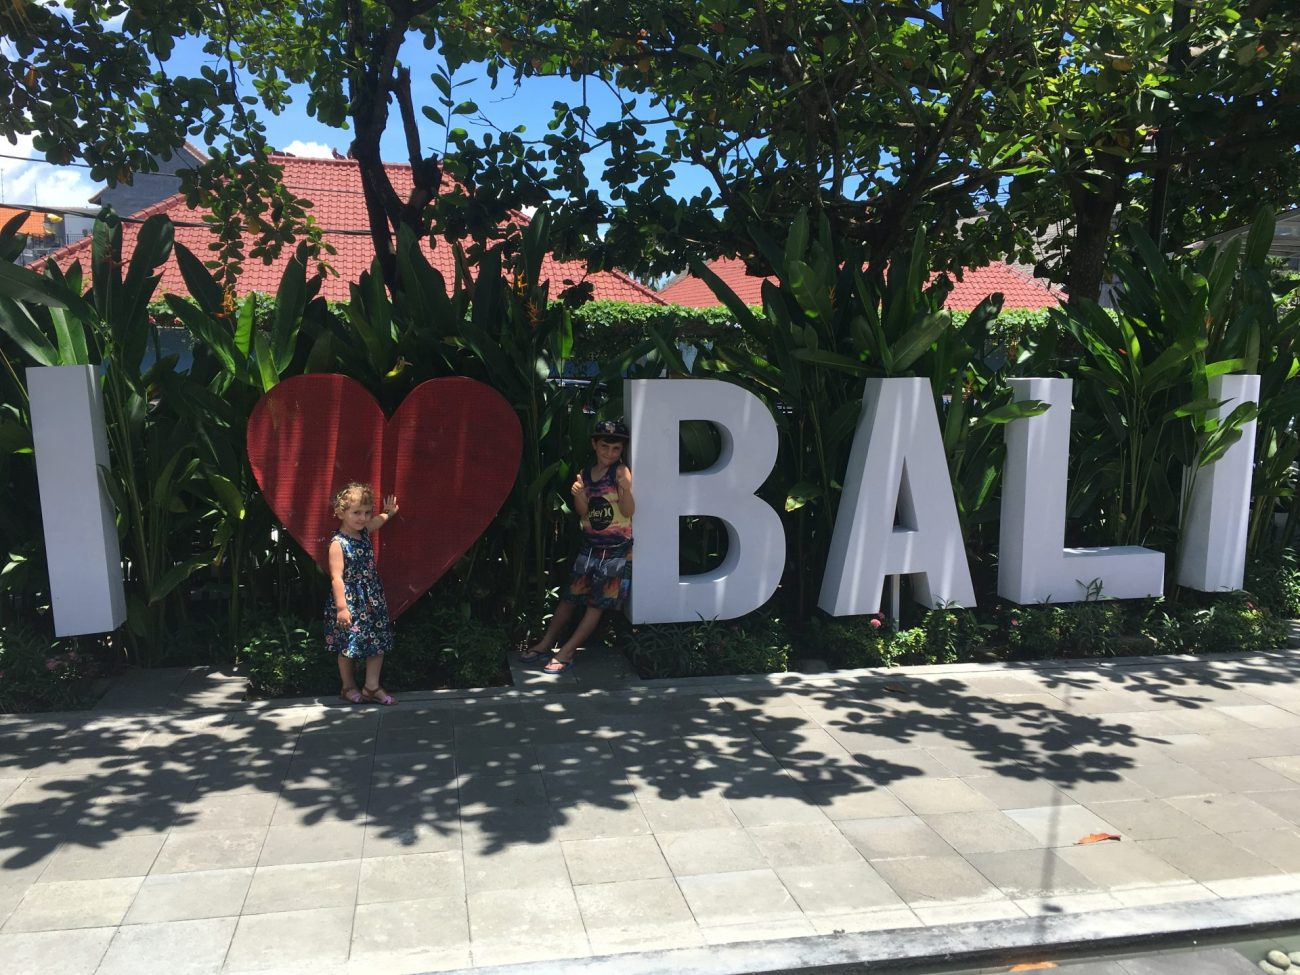 Where to stay in Bali with a family I love Bali sign Ubud, Bali, Indonesia